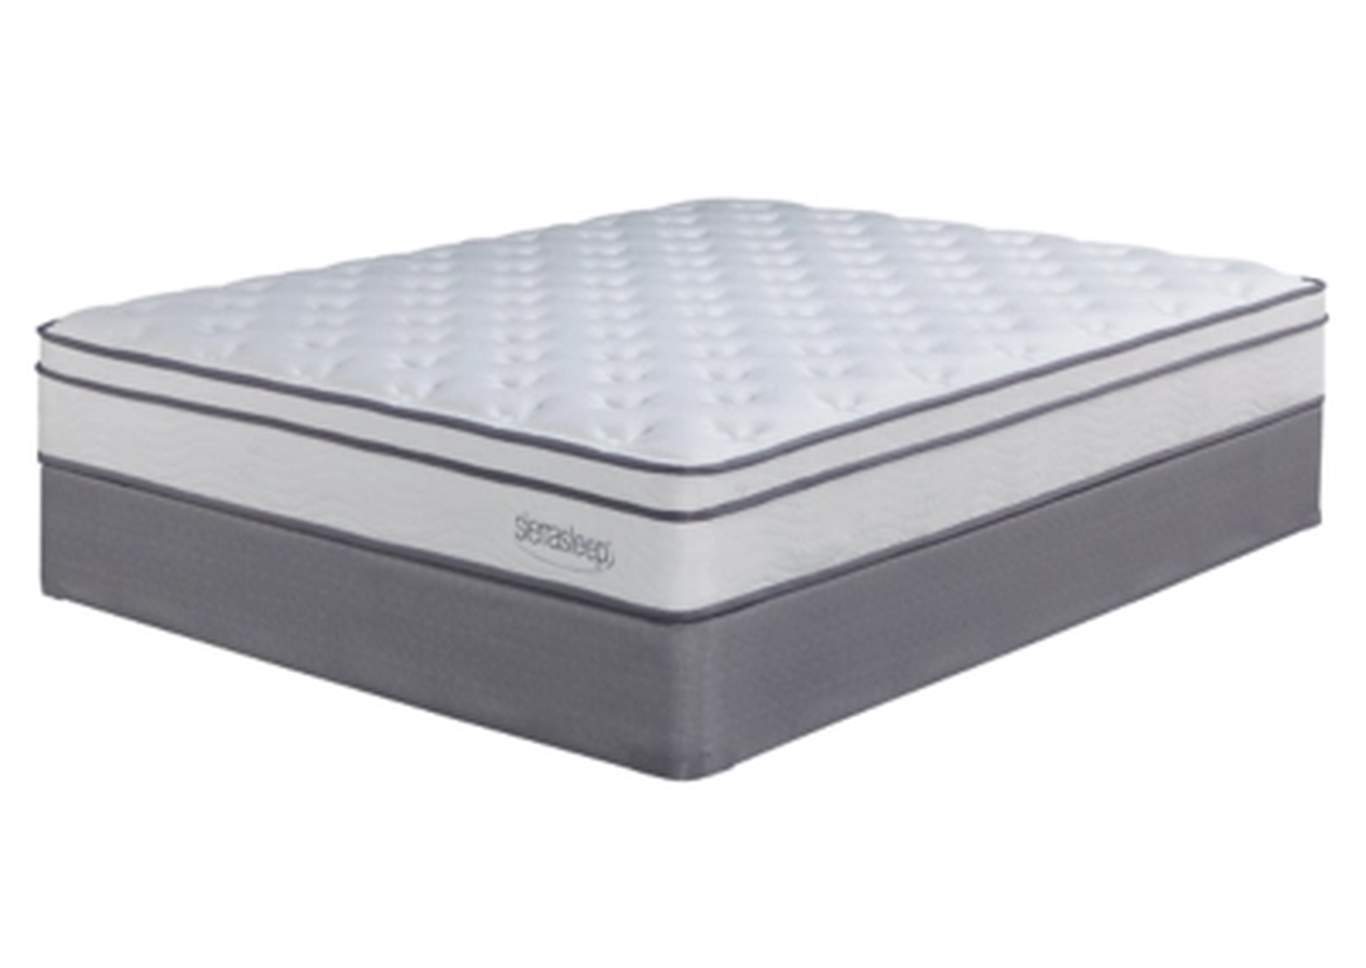 Longs Peak Limited White Twin Mattress,Sierra Sleep by Ashley